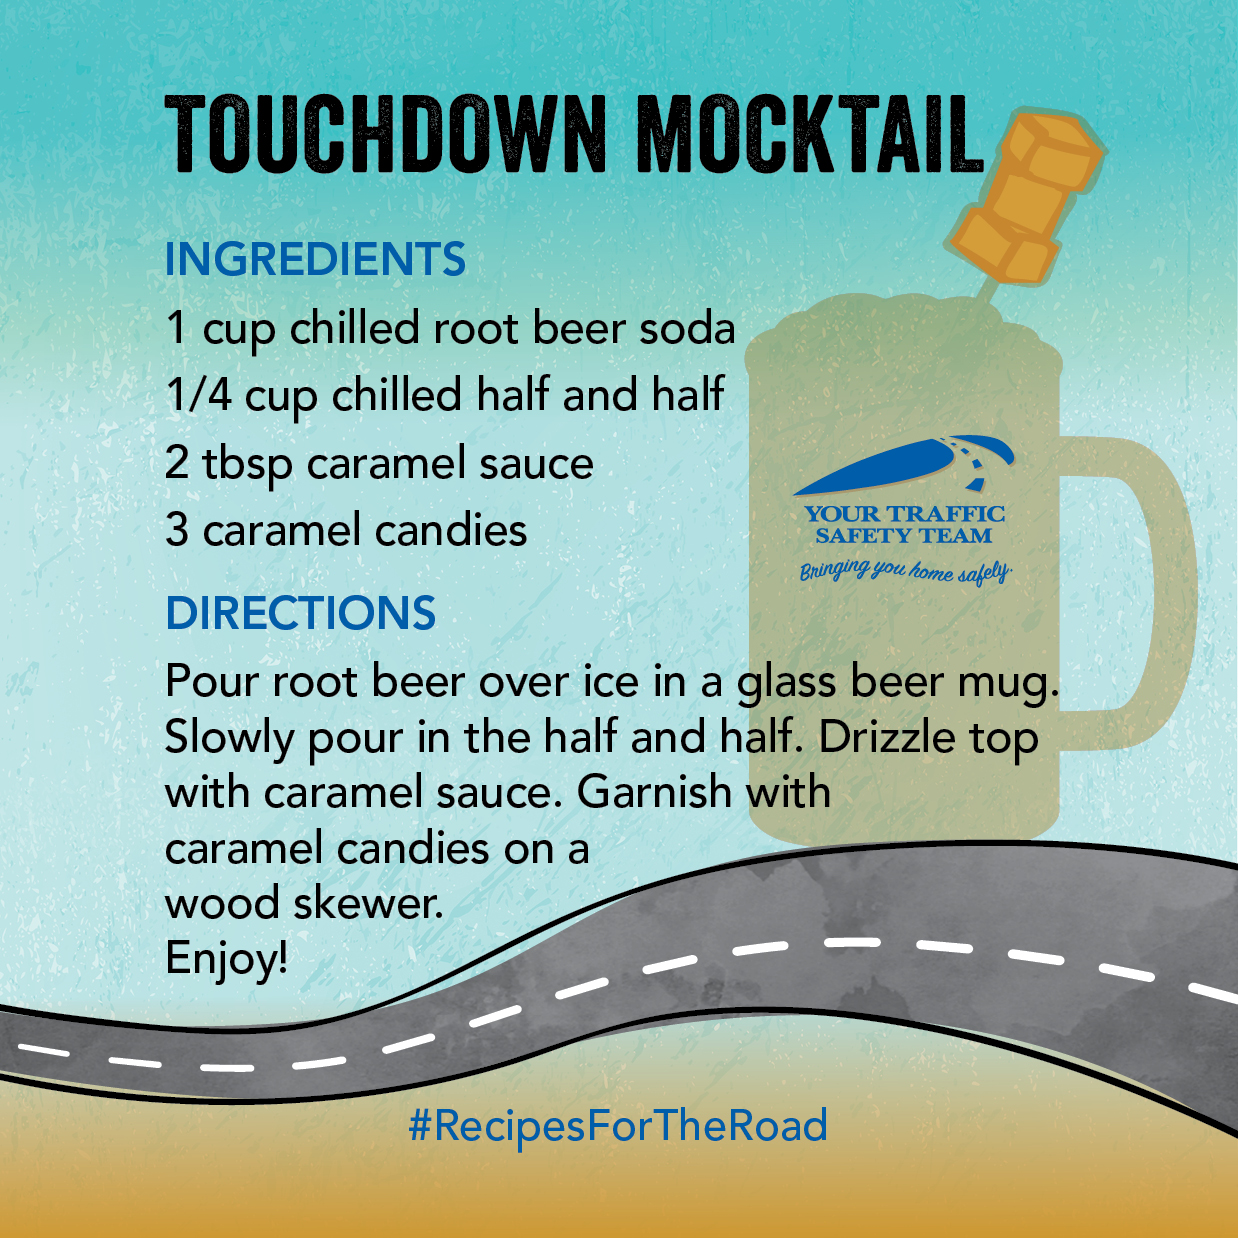 Traffic Safety Jaguar Football Mocktail Drink Recipe